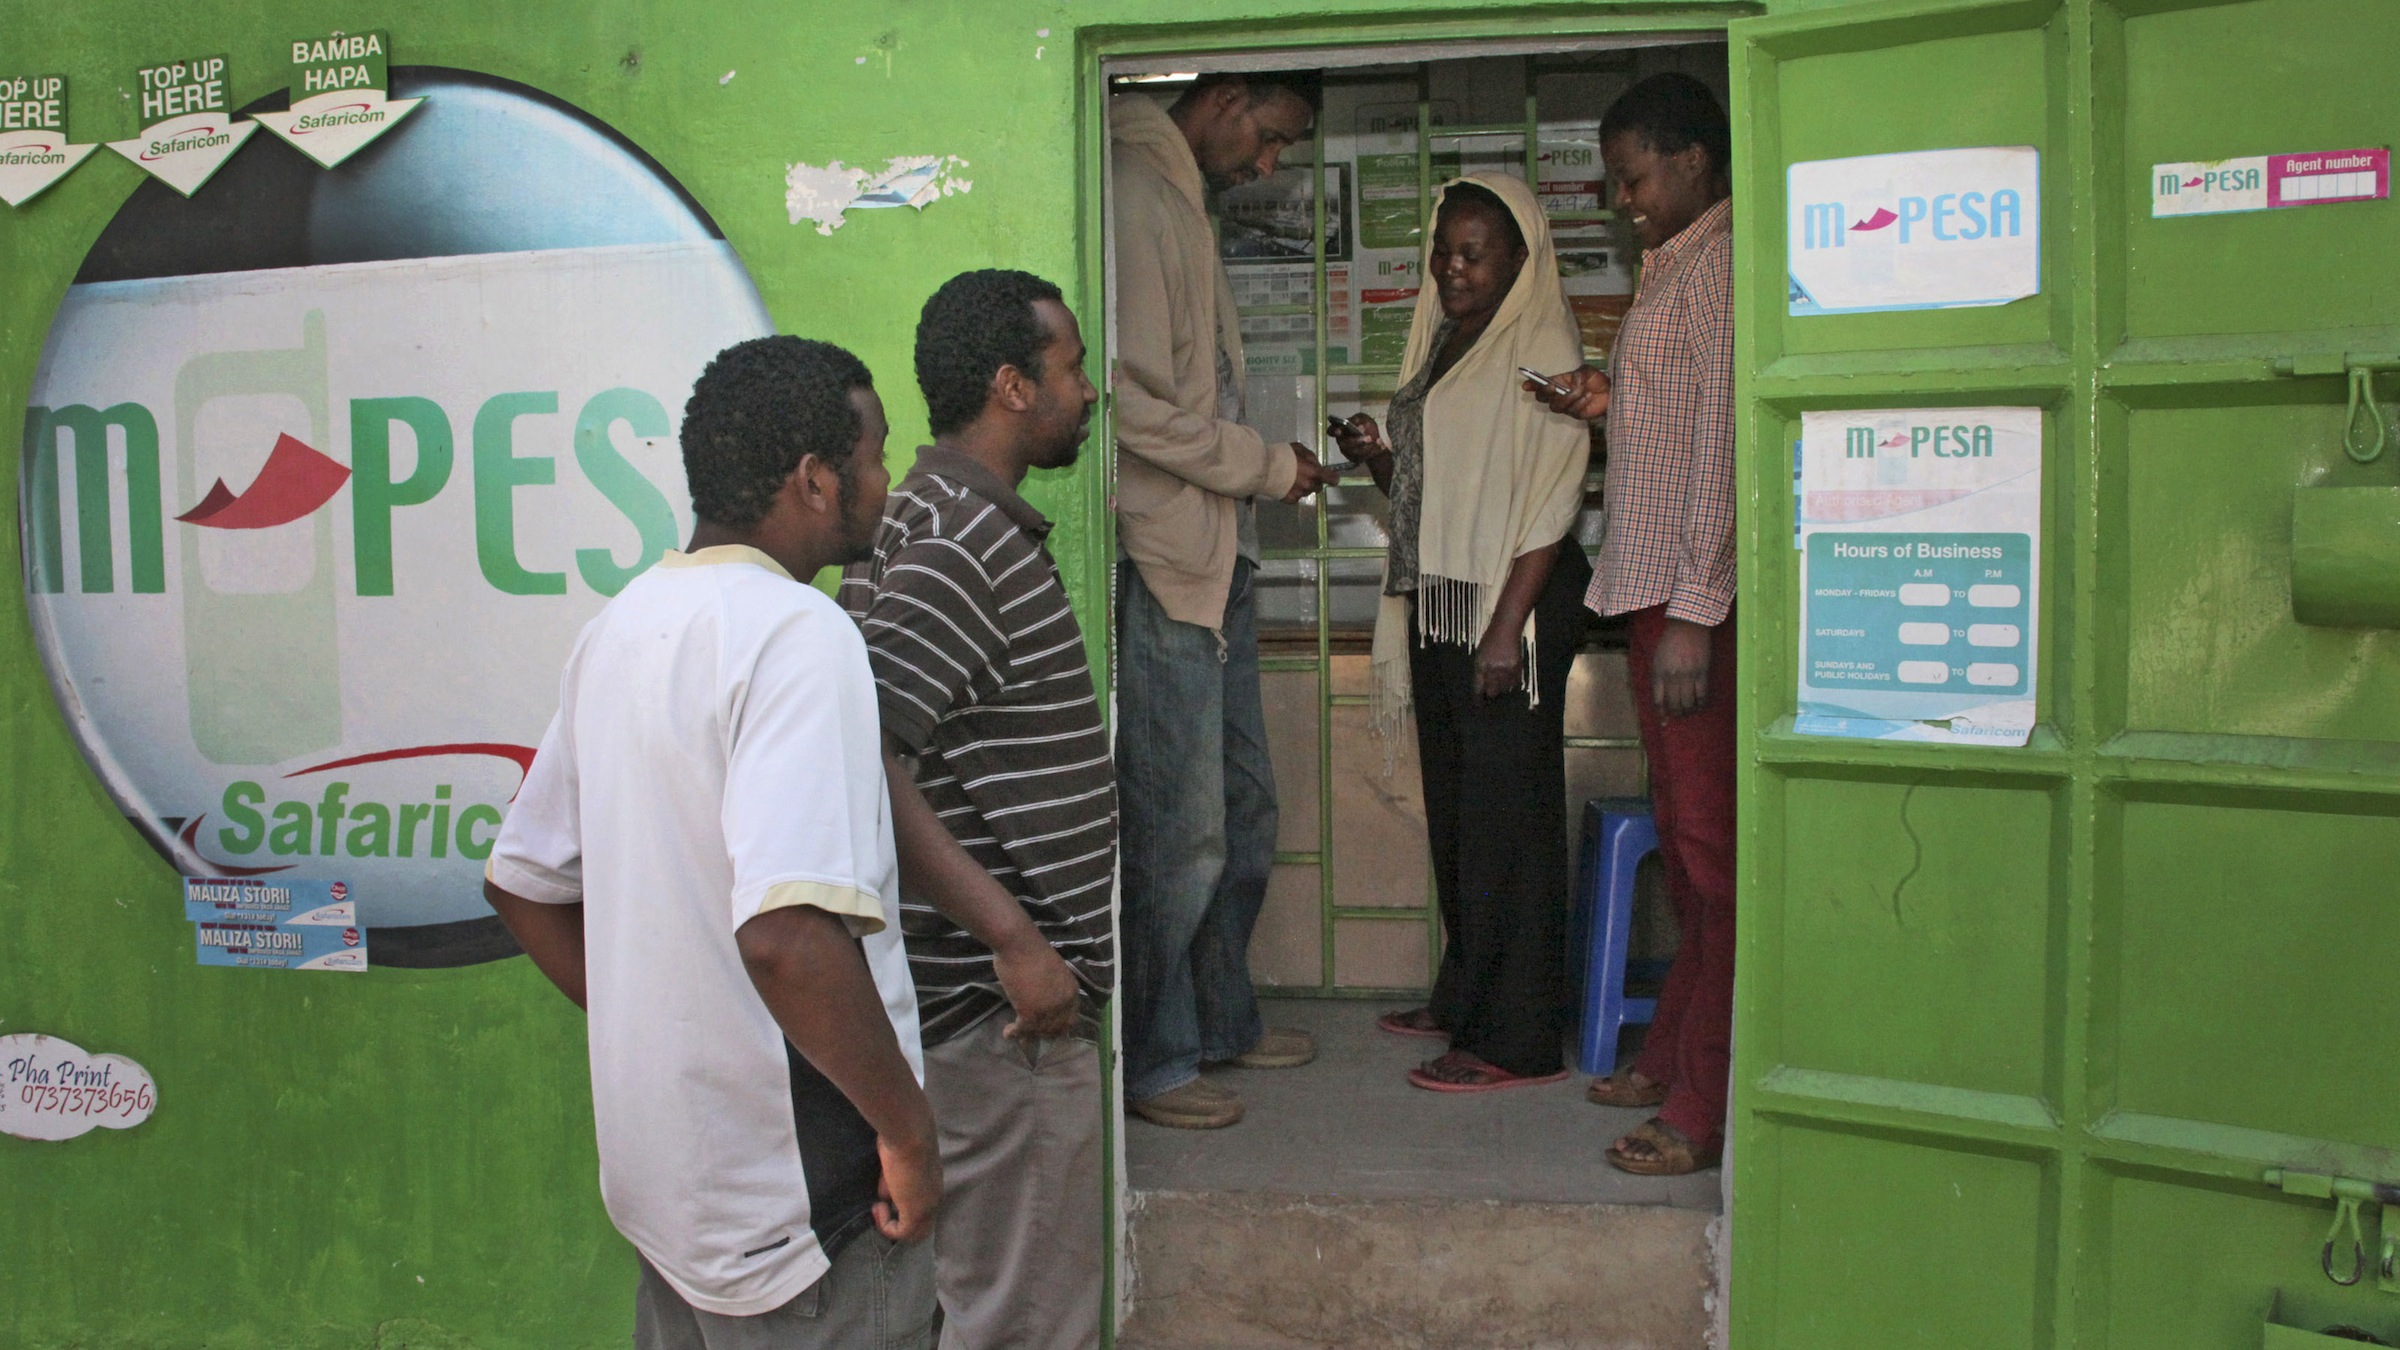 In this photo of Wednesday Aug. 24, 2011 customers make money transfers at an M-Pesa counter in Nairobi, Kenya, as others wait outside. A mobile phone banking service called M-Pesa allows people without a bank account to transfer money between phones instantly anywhere in the country. More than 50 countries now have such services, including Afghanistan. The fundraising effort Kenyans for Kenya has raised more than $7 million for drought victims. Bob Collymore, the head of telelphone company Safaricom, said more than 86 percent of early donations to the campaign came through M-Pesa.(AP Photo/Sayyid Abdul Azim)